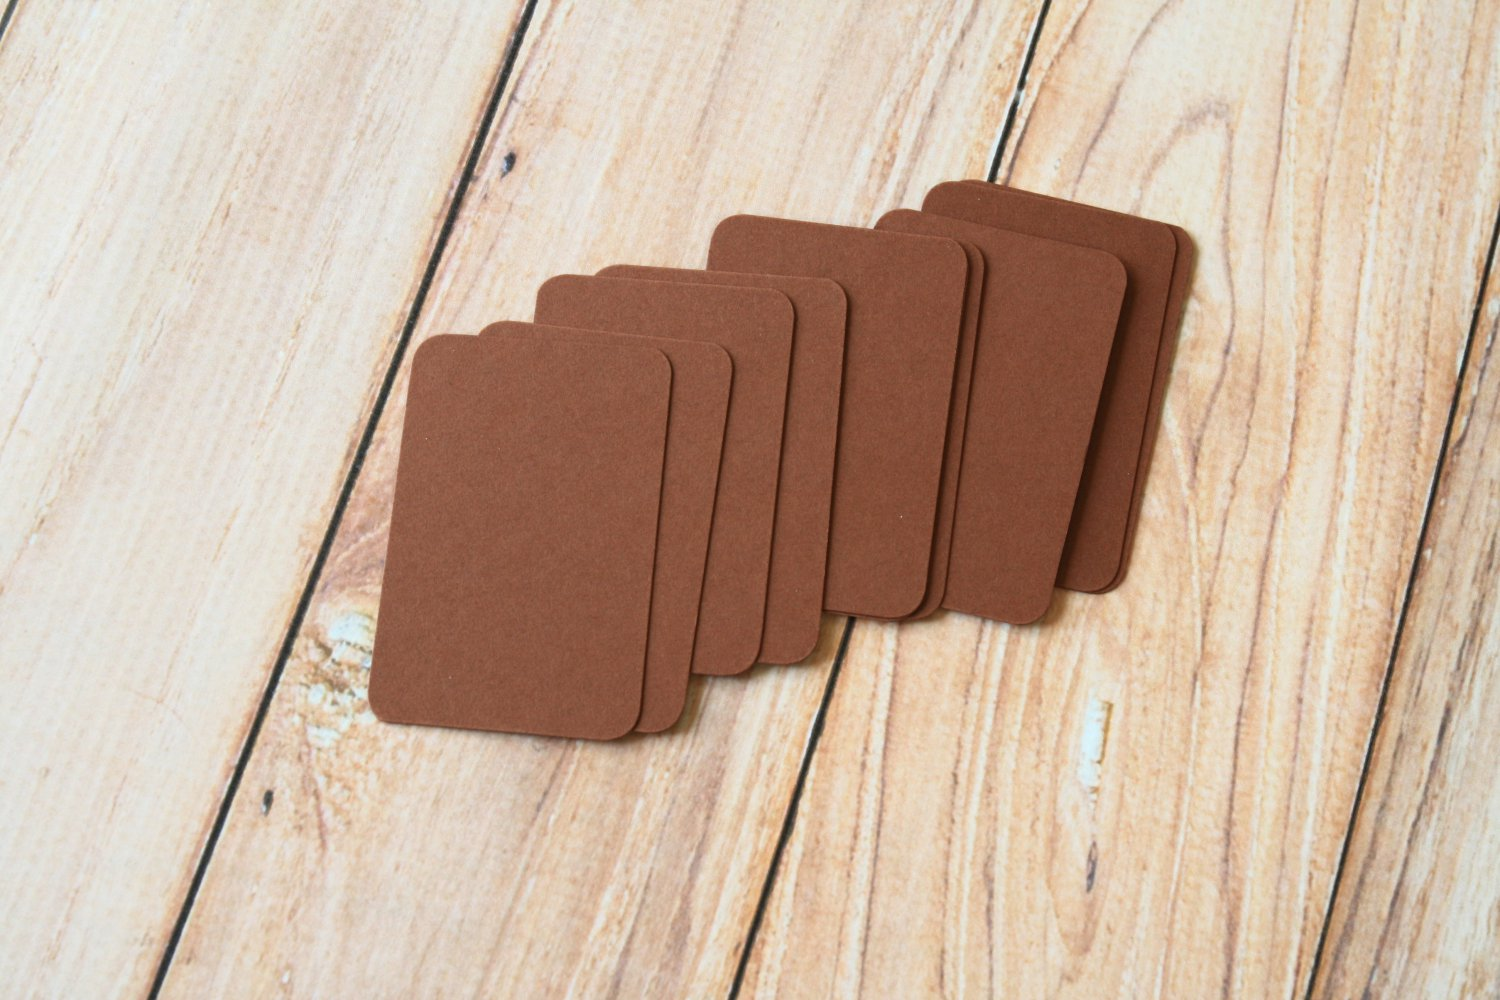 Chocolate Brown blank business cards